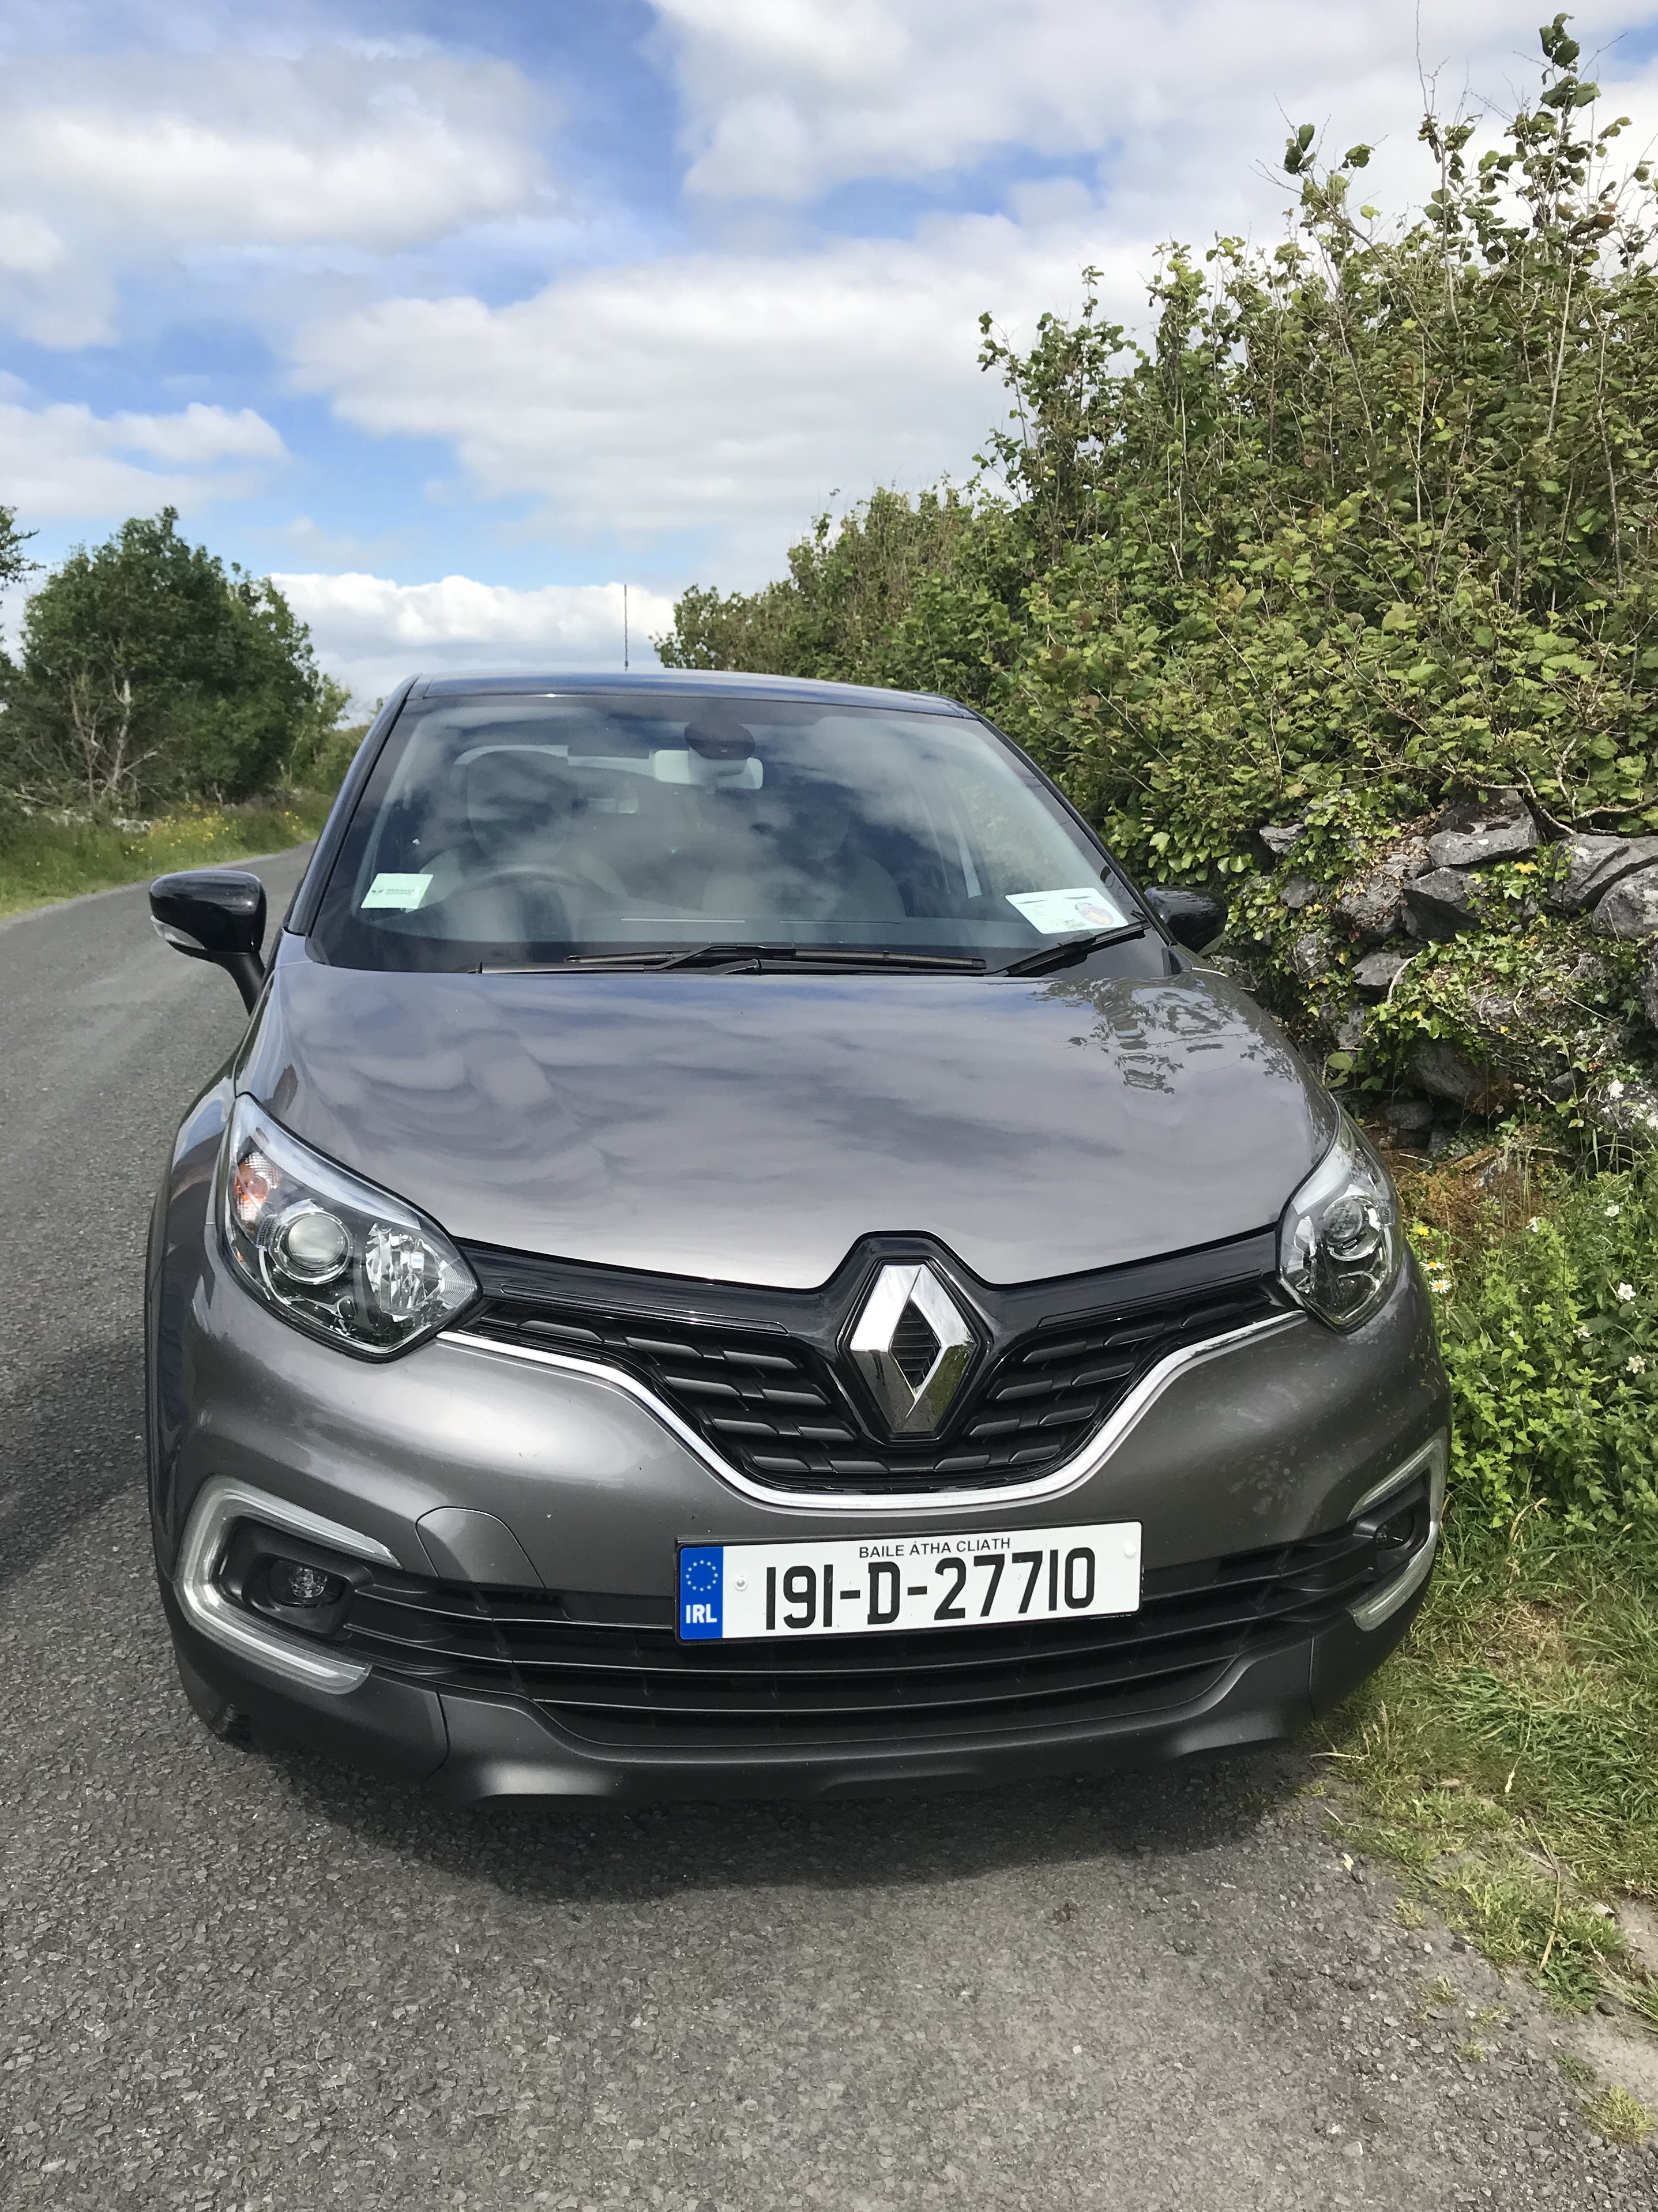 The Renault Captur car we hired